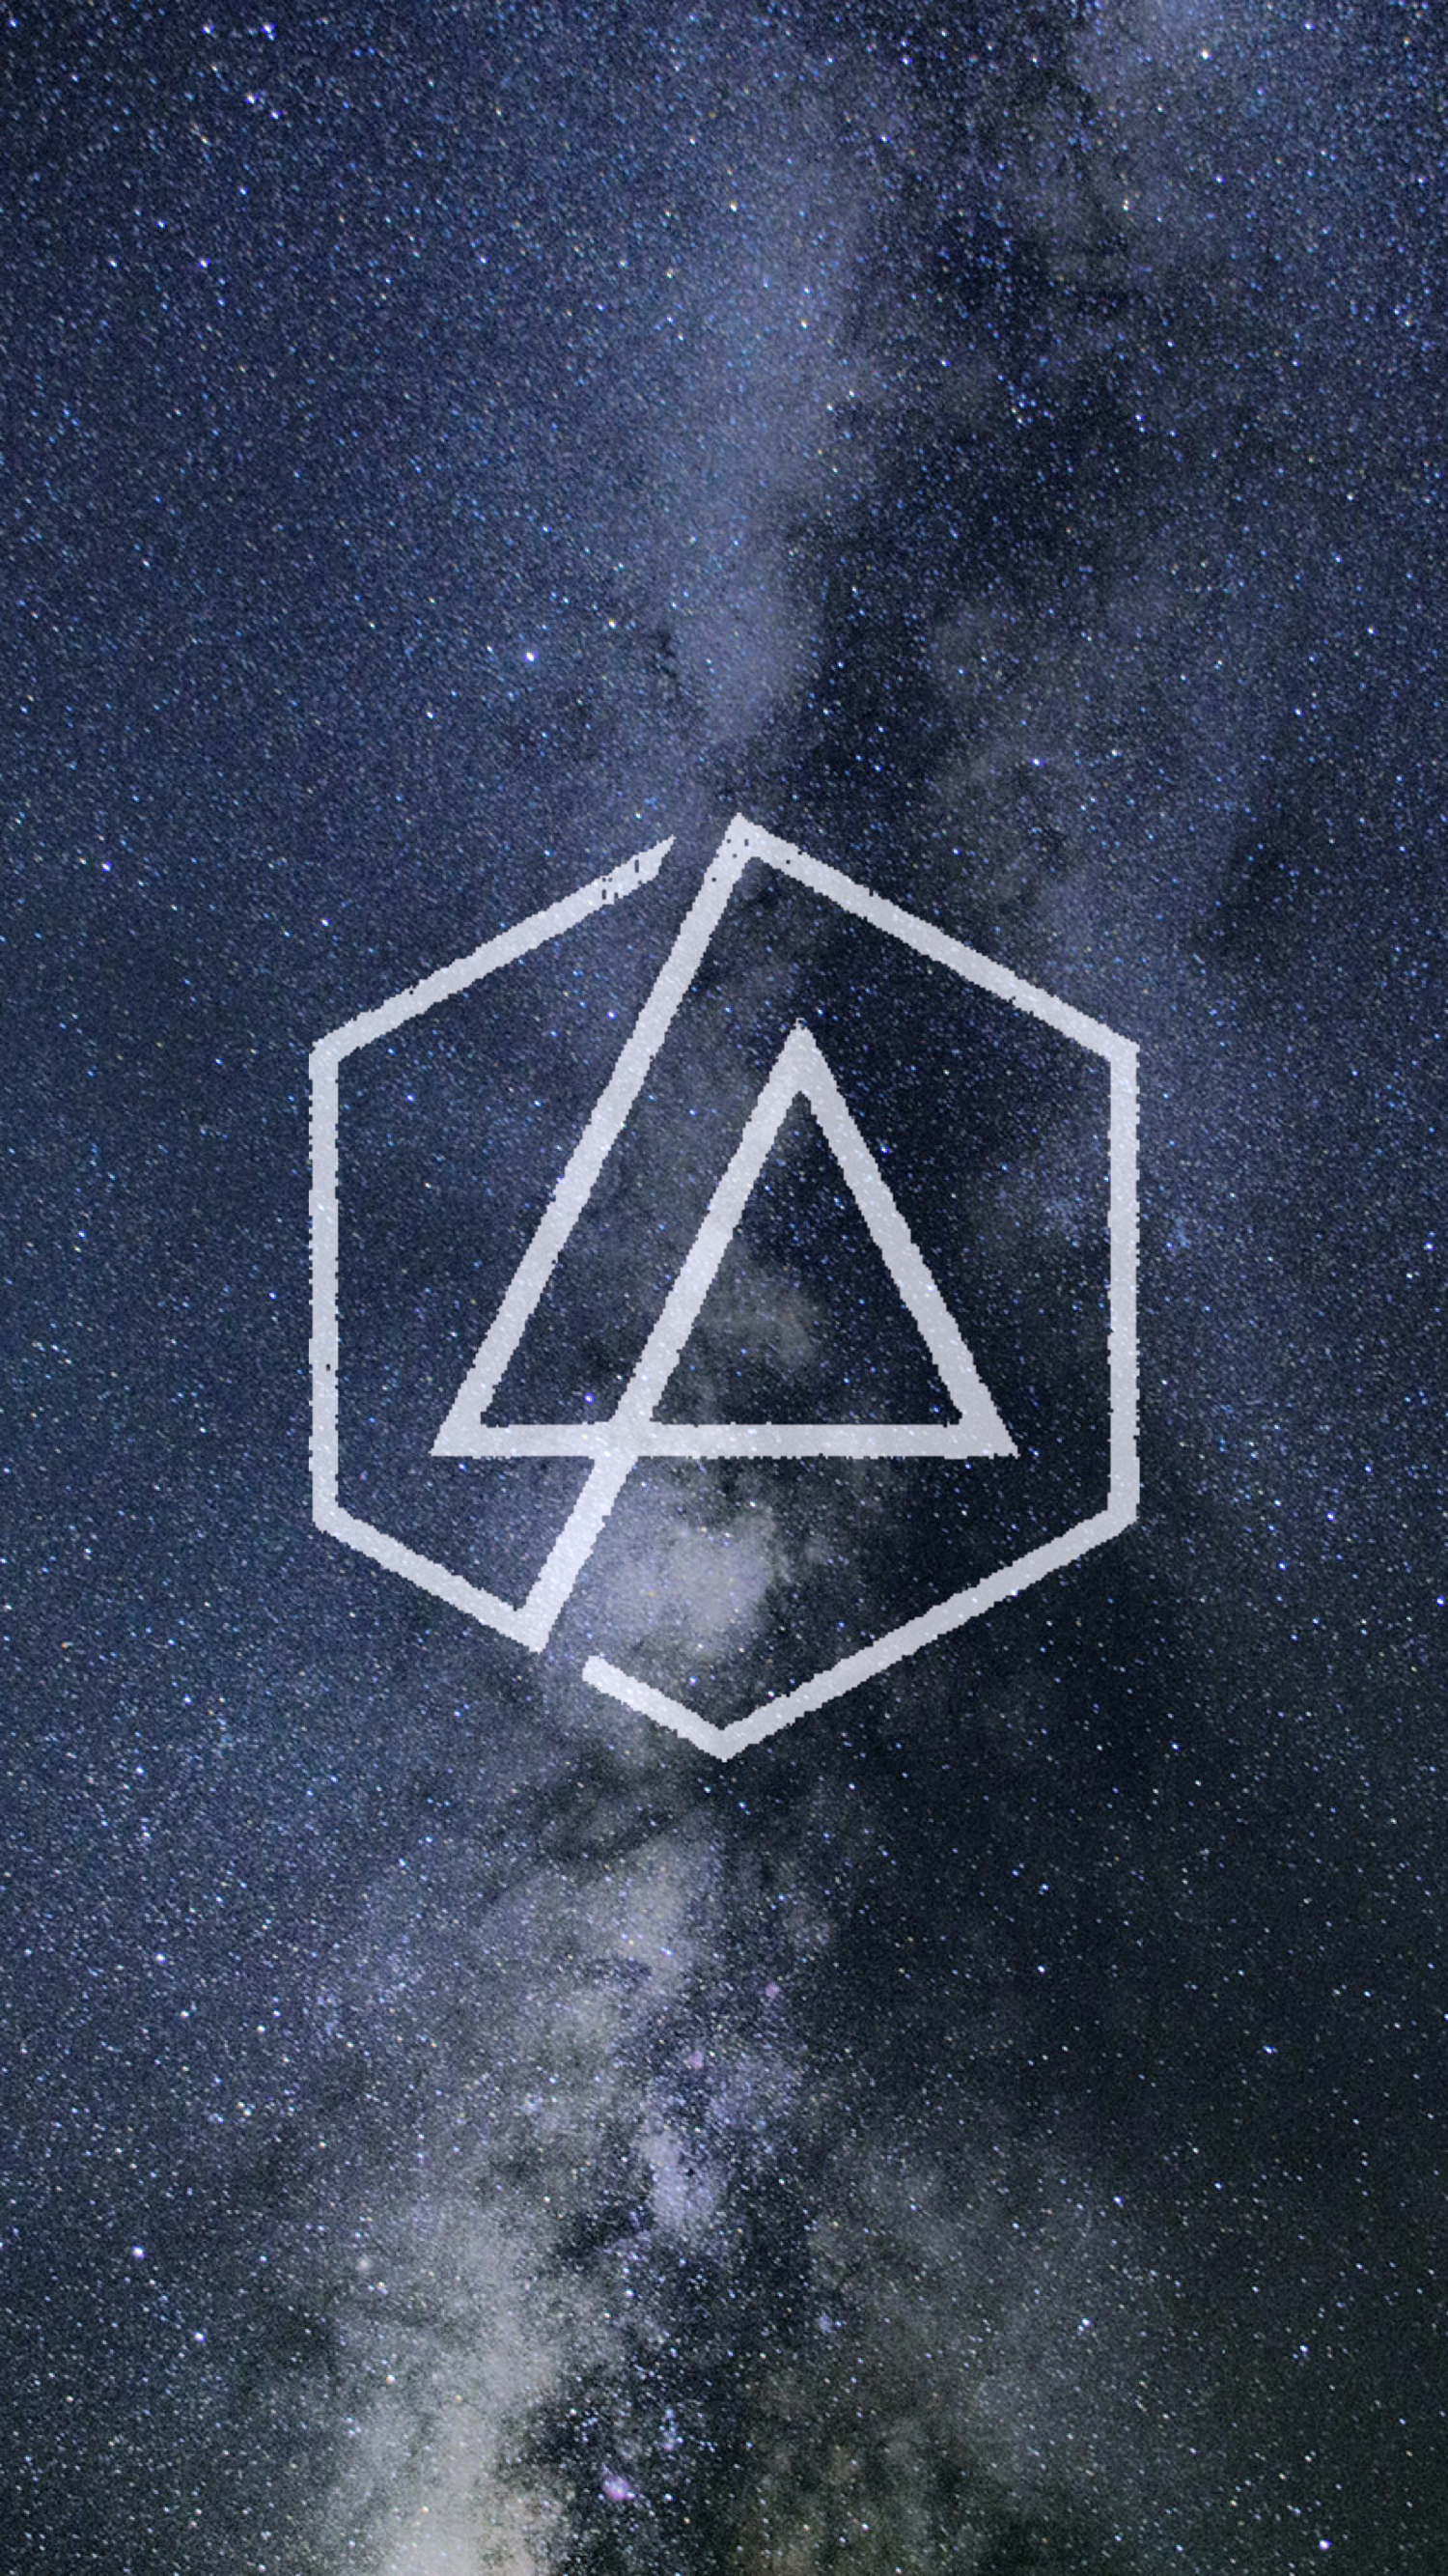 20 Logo Linkin Park Wallpapers On Wallpapersafari